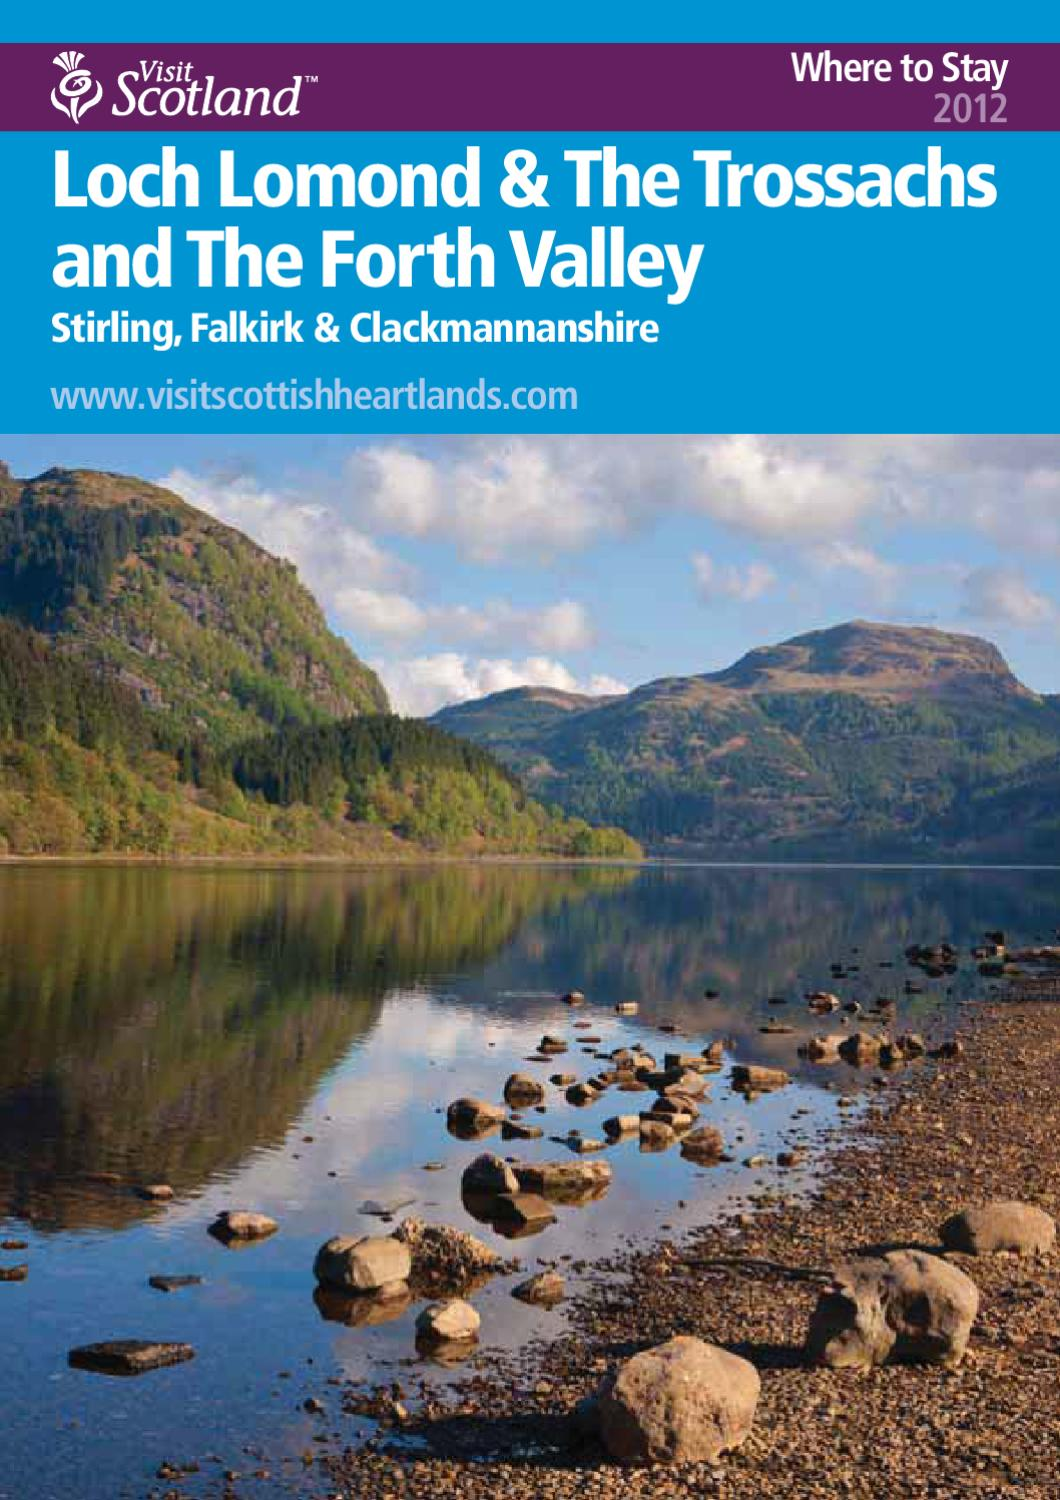 Loch Lomond, The Trossachs and The Forth Valley by Plan B Scotland ...